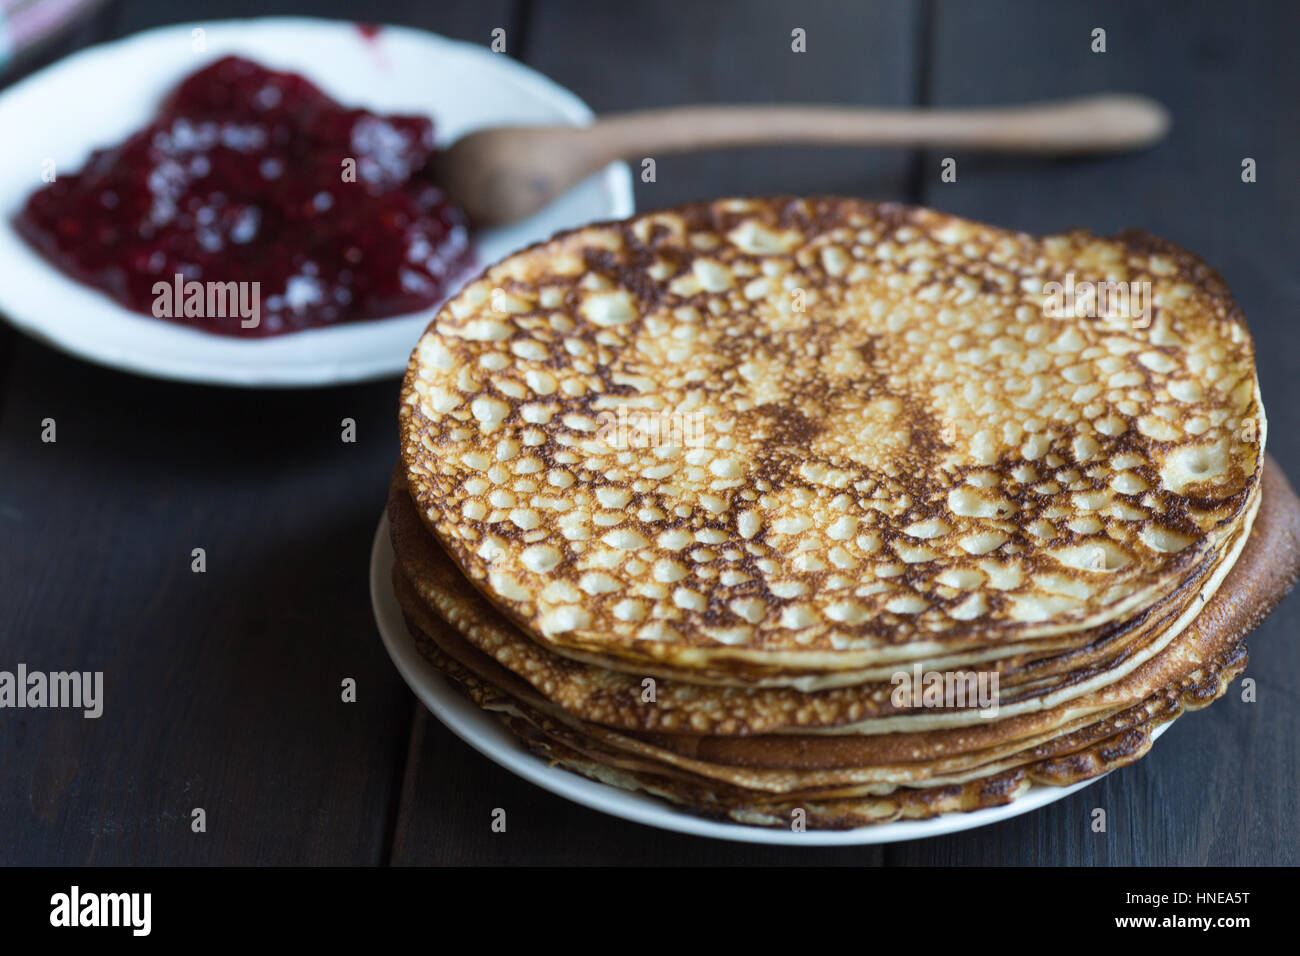 Homemade pancakes with raspberry jam on a dark wooden table. Top view with hands. Shrove Tuesday. - Stock Image